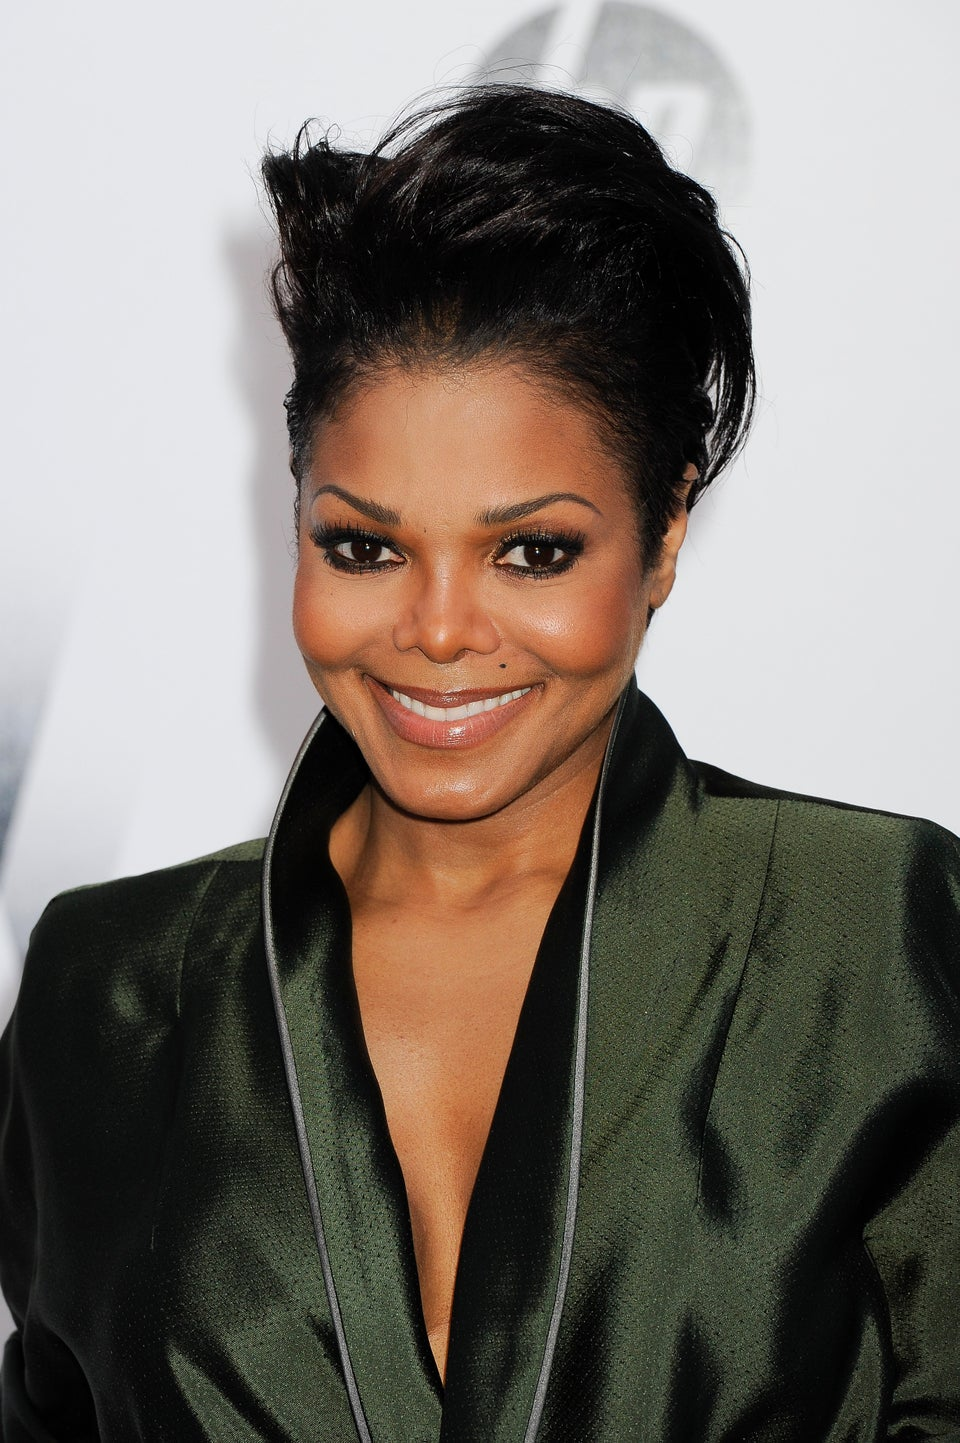 Janet Jackson Becomes the New Face of Nutrisystem